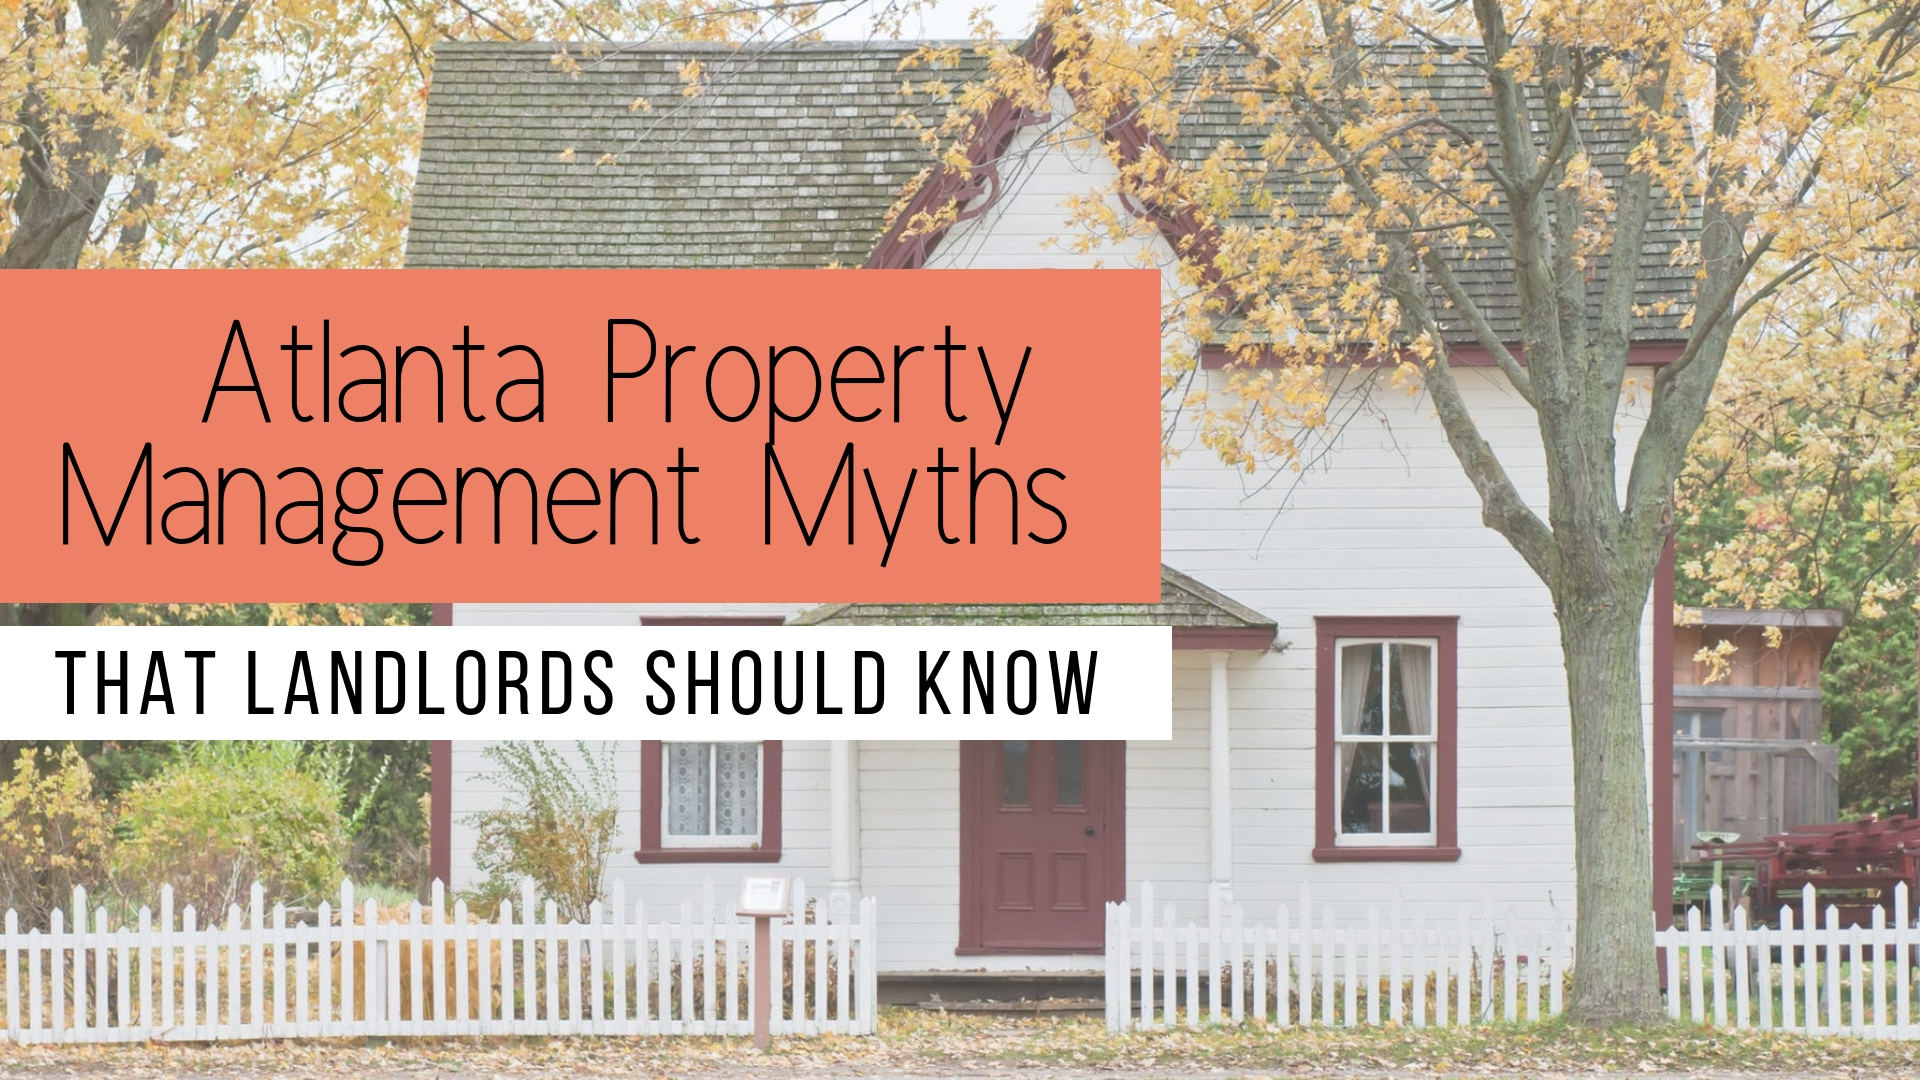 Atlanta Property Management Myths that Landlords Should Know